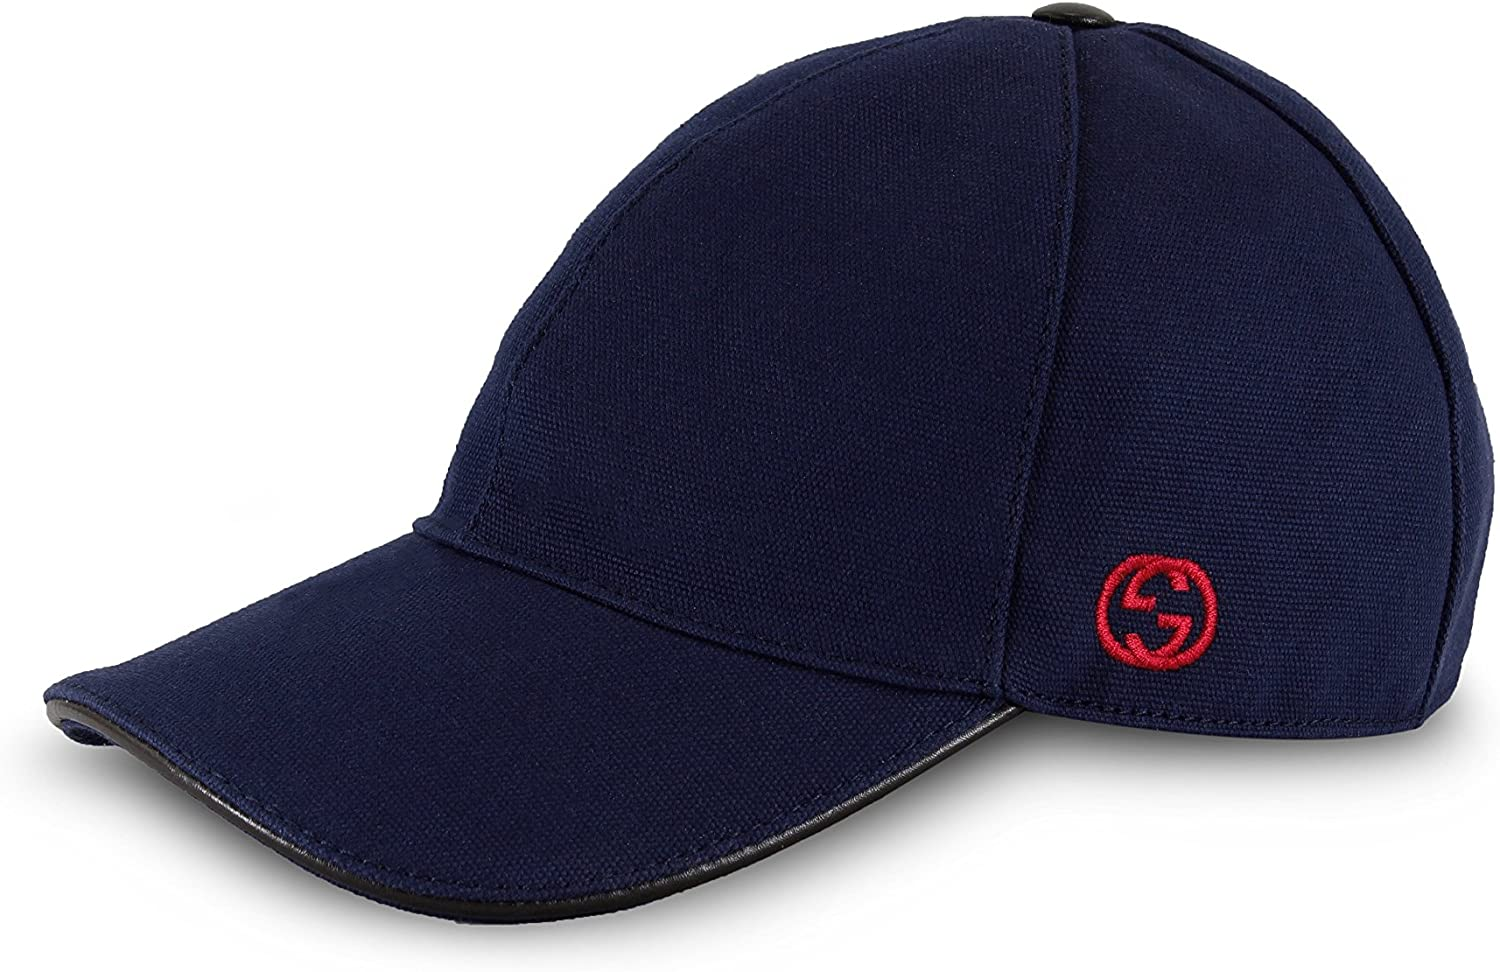 Image of Gucci Cotton Canvas with GG Detail Baseball Cap, Navy 387554